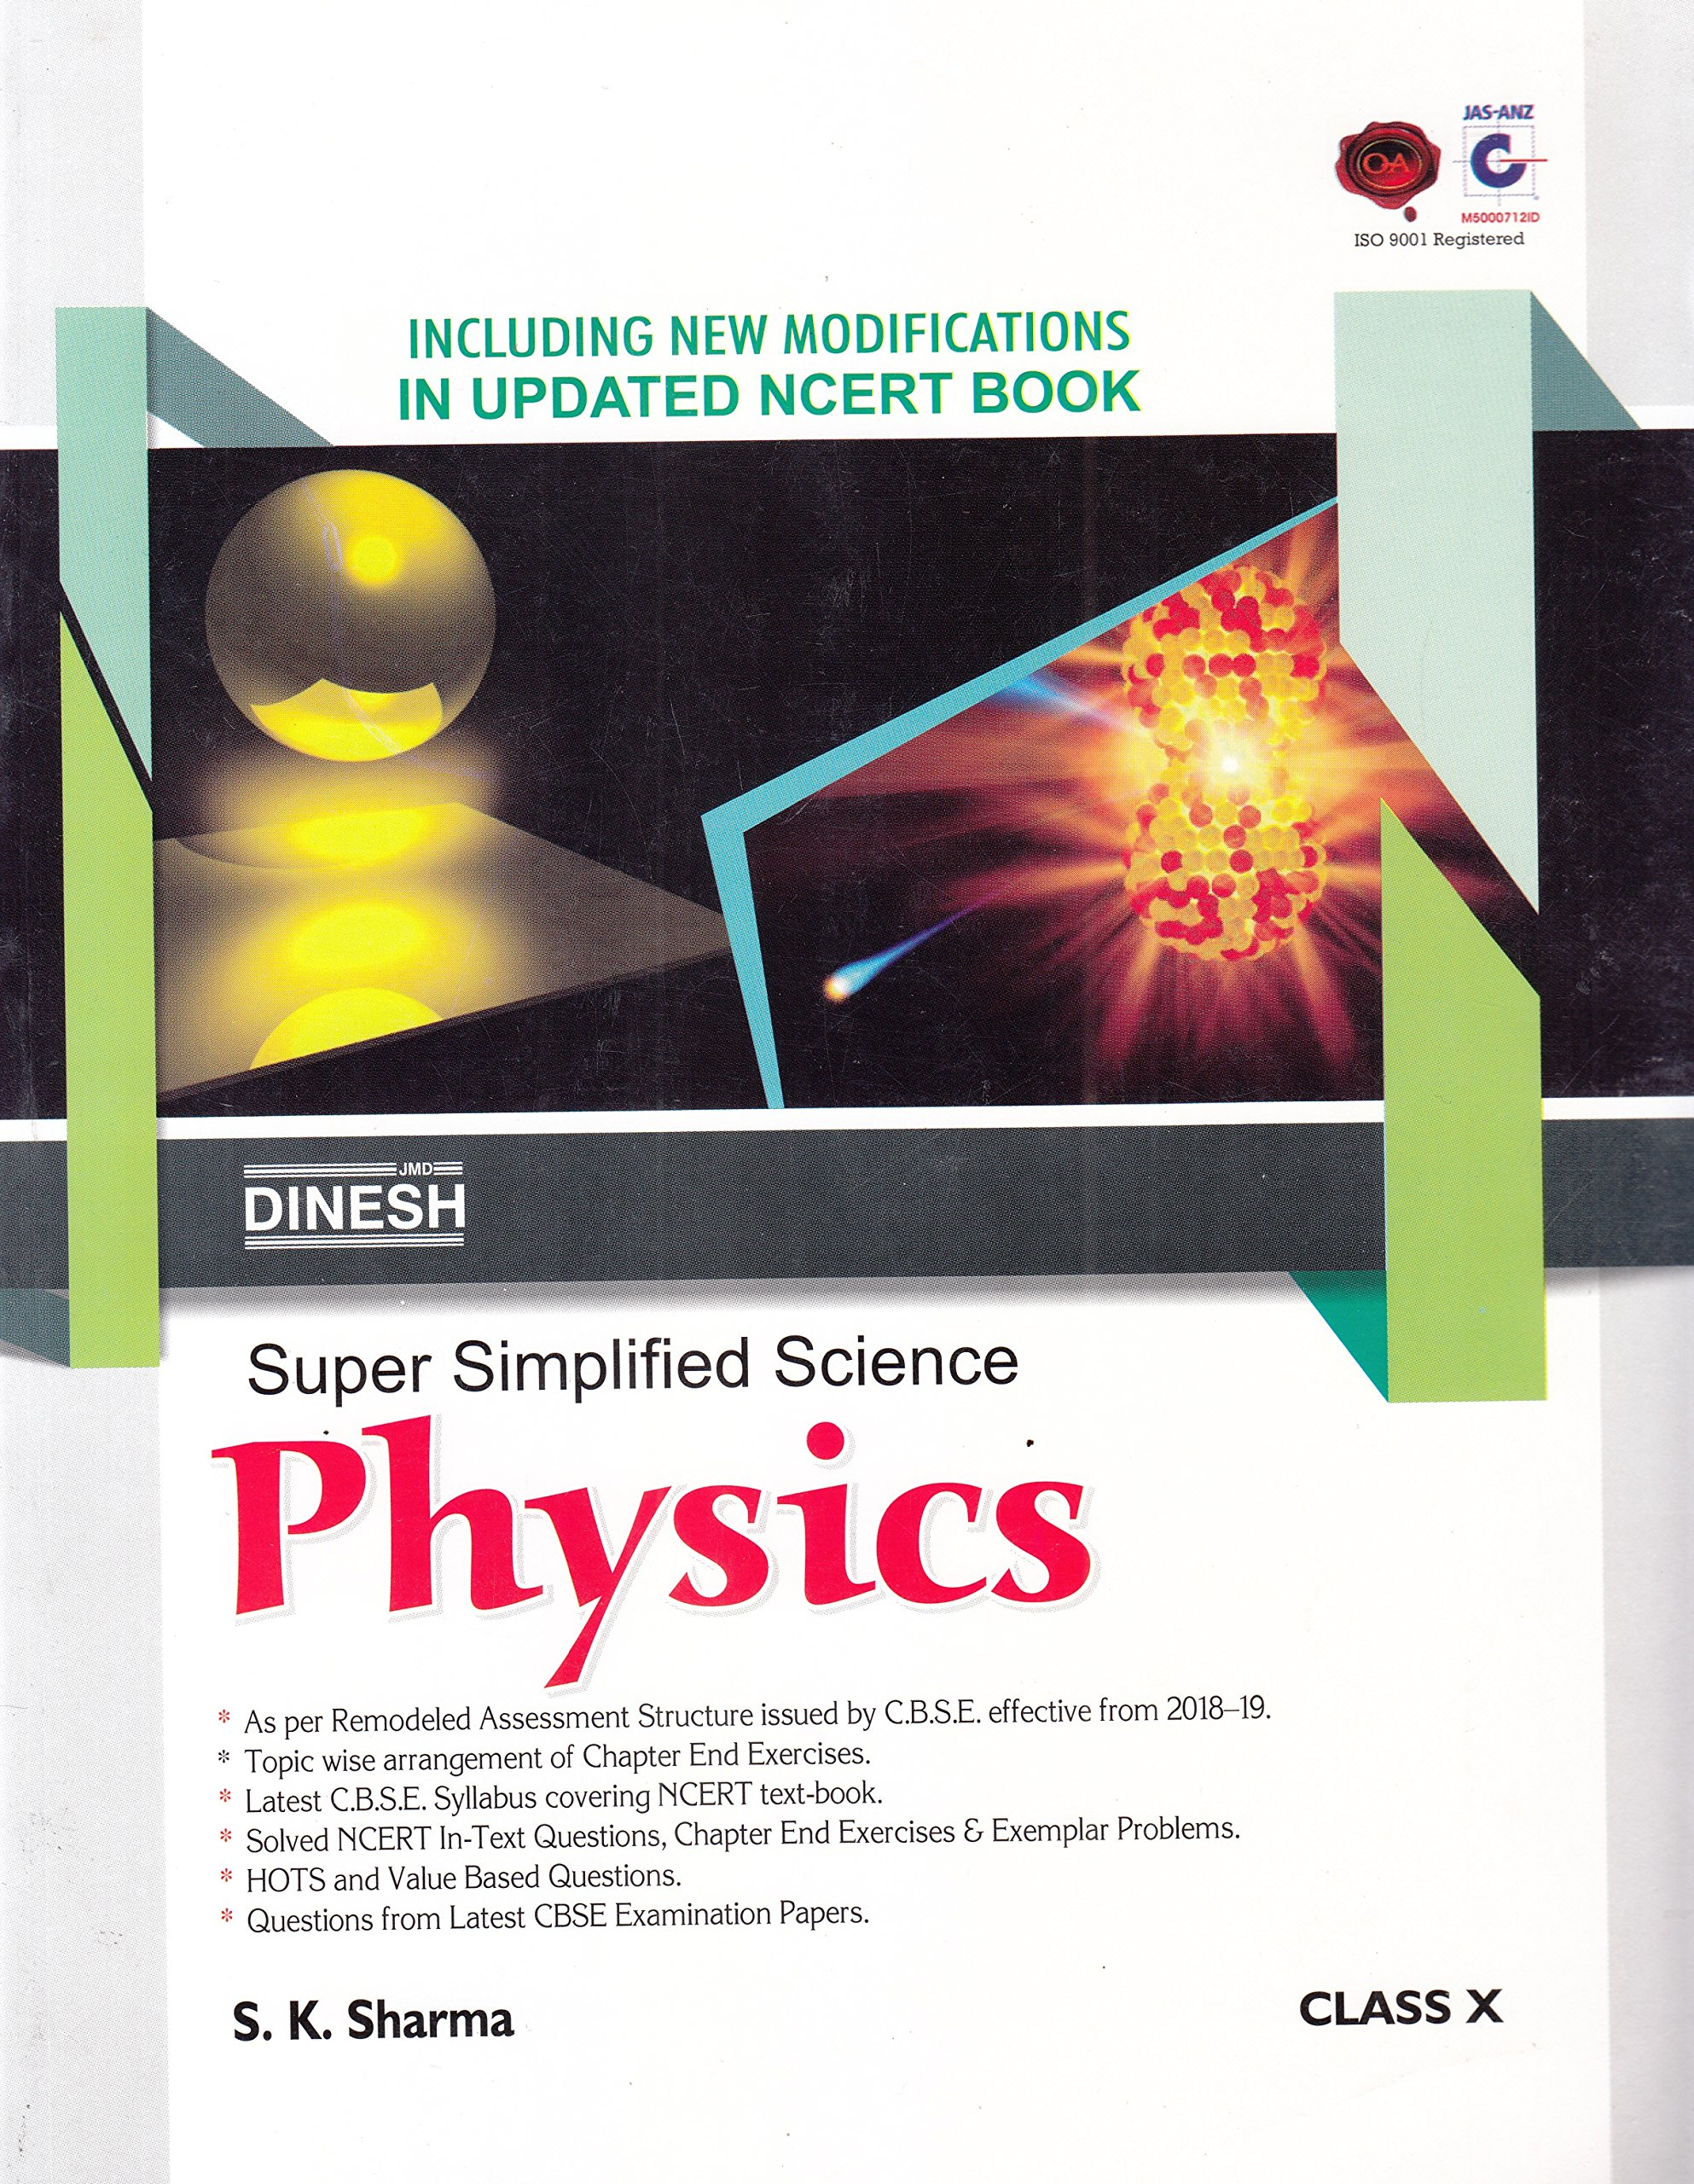 Dinesh Super Simplified Science Physics - Class 10 2018-2019